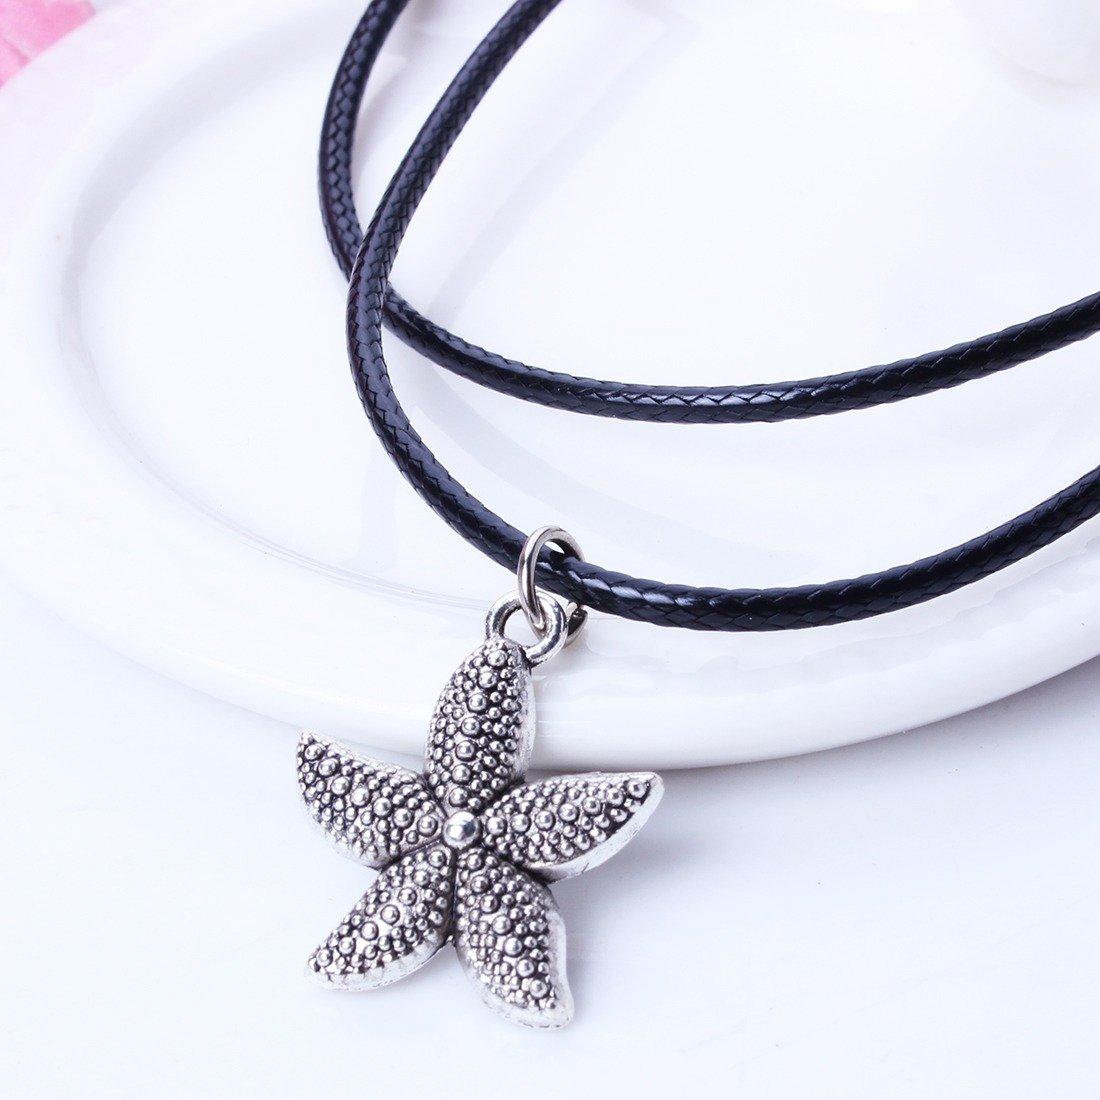 Qiyun Antique Silver Plating Starfish Girls Cute Necklace Placage DArgent Filles De toiles Mer Mignonne Collier